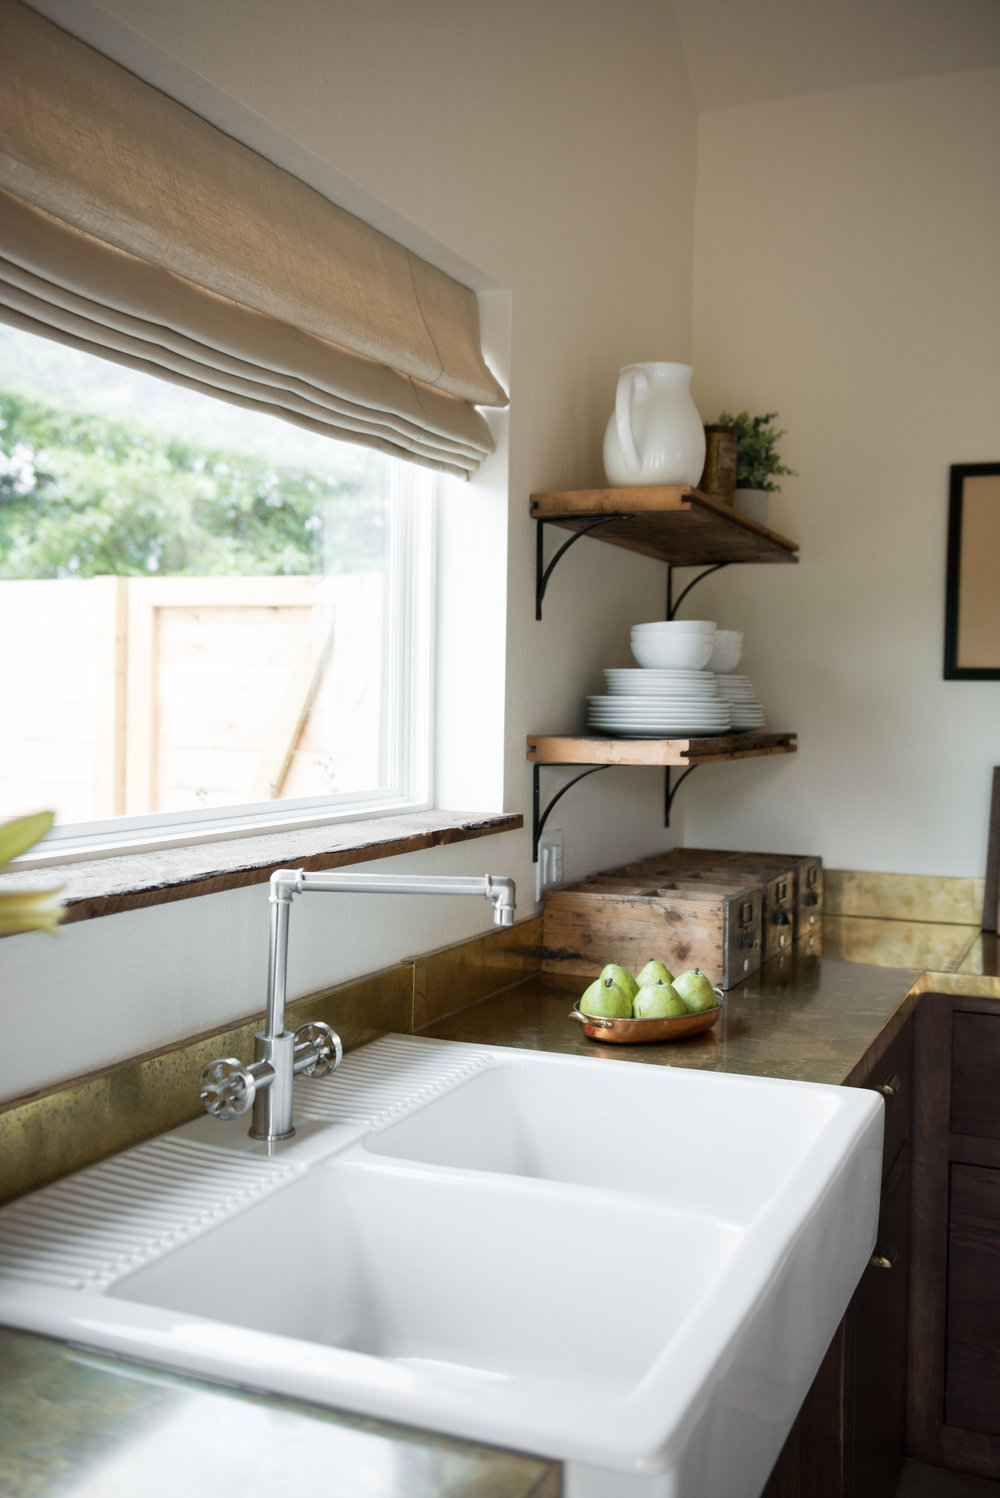 Select Blinds - We worked with Select Blinds to choose the window coverings for our kitchen, great room and guest rooms. For us, the details matter - even down to the window treatments!